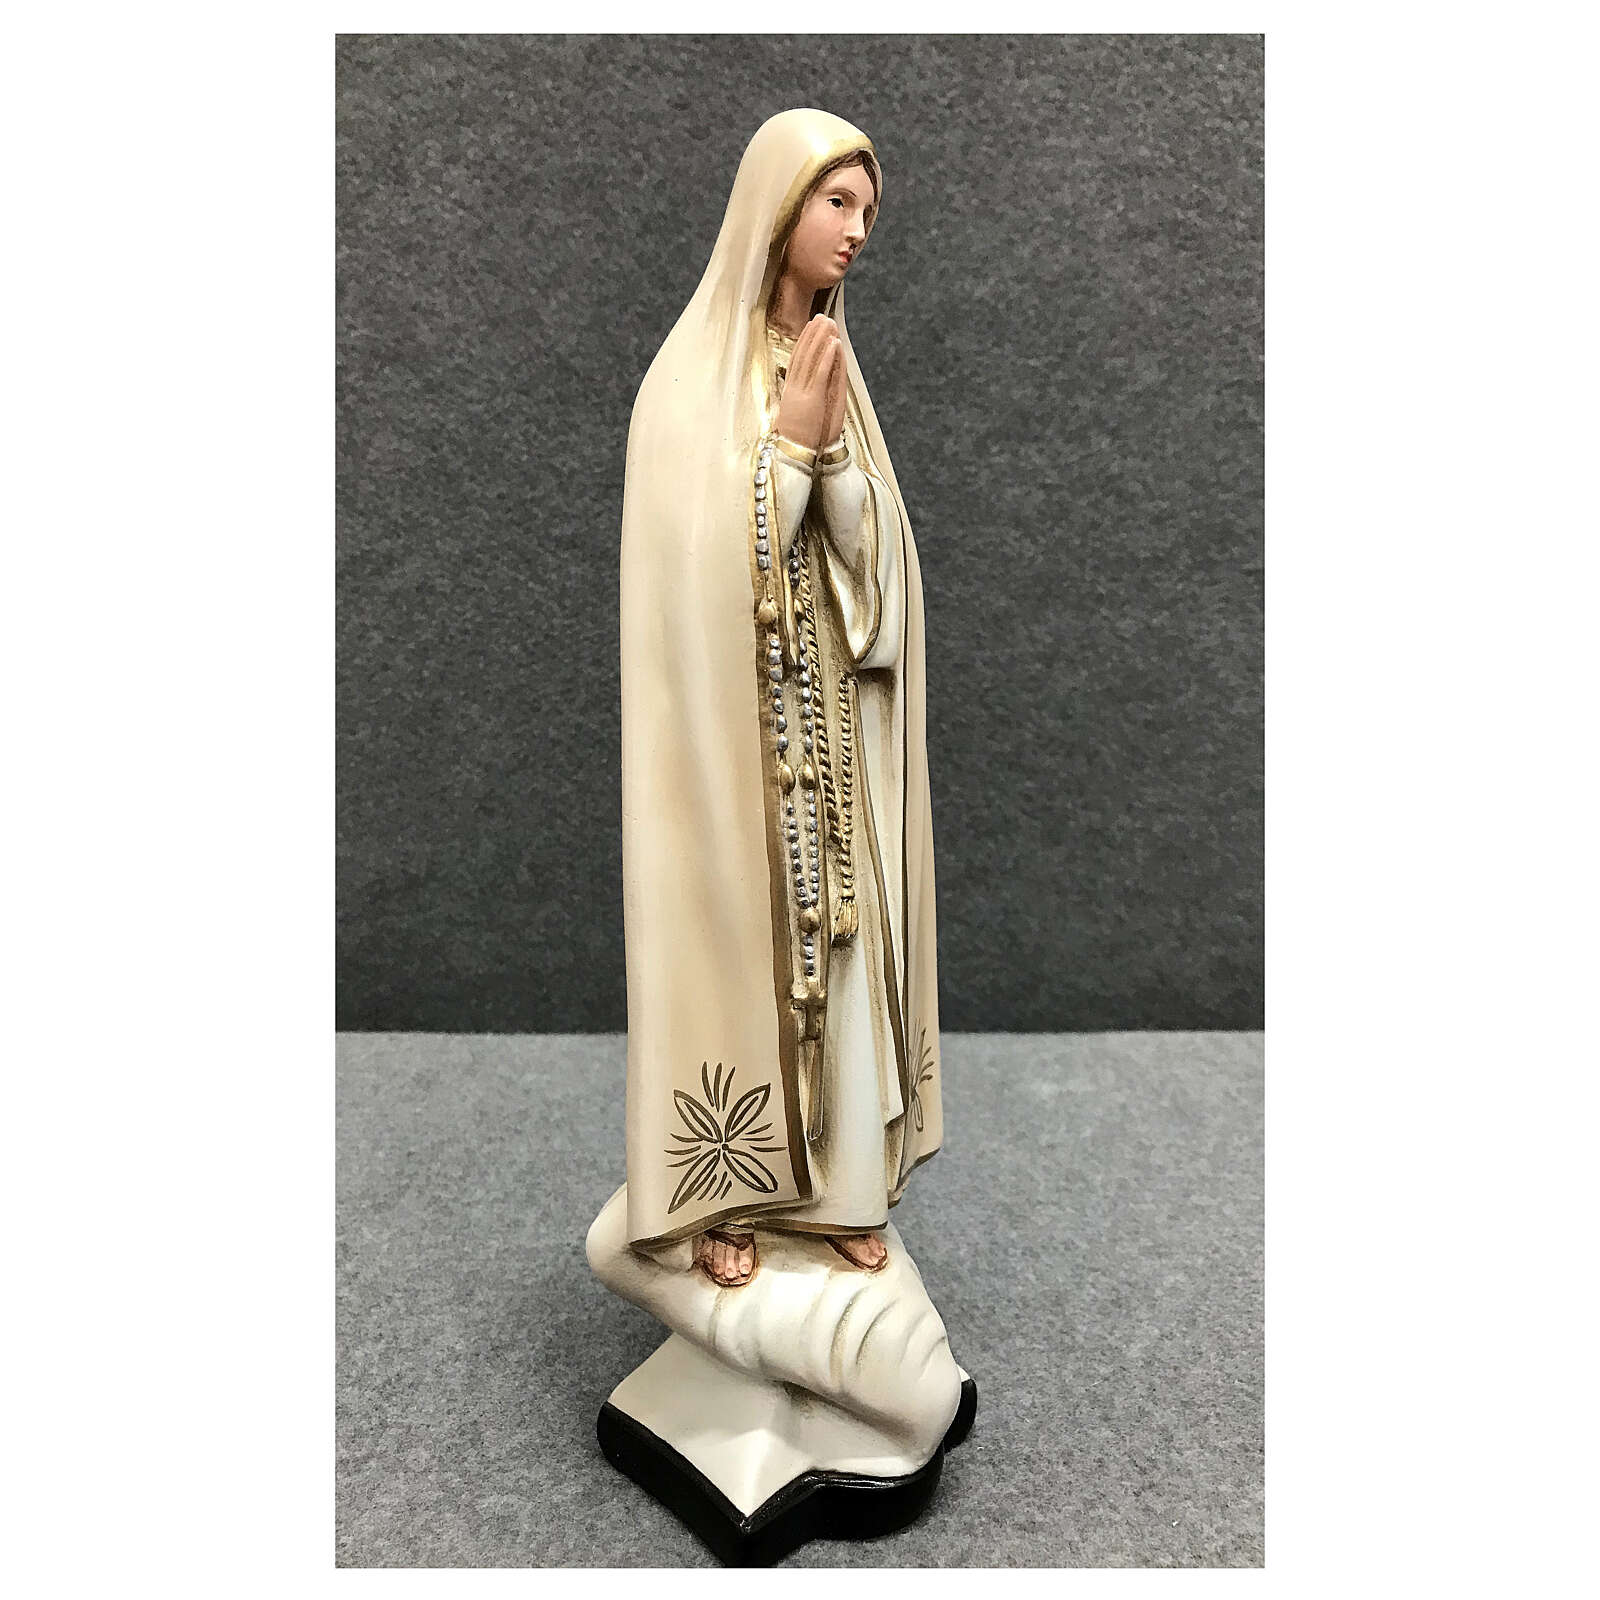 Our Lady of Fatima statue 30 cm in painted resin 4